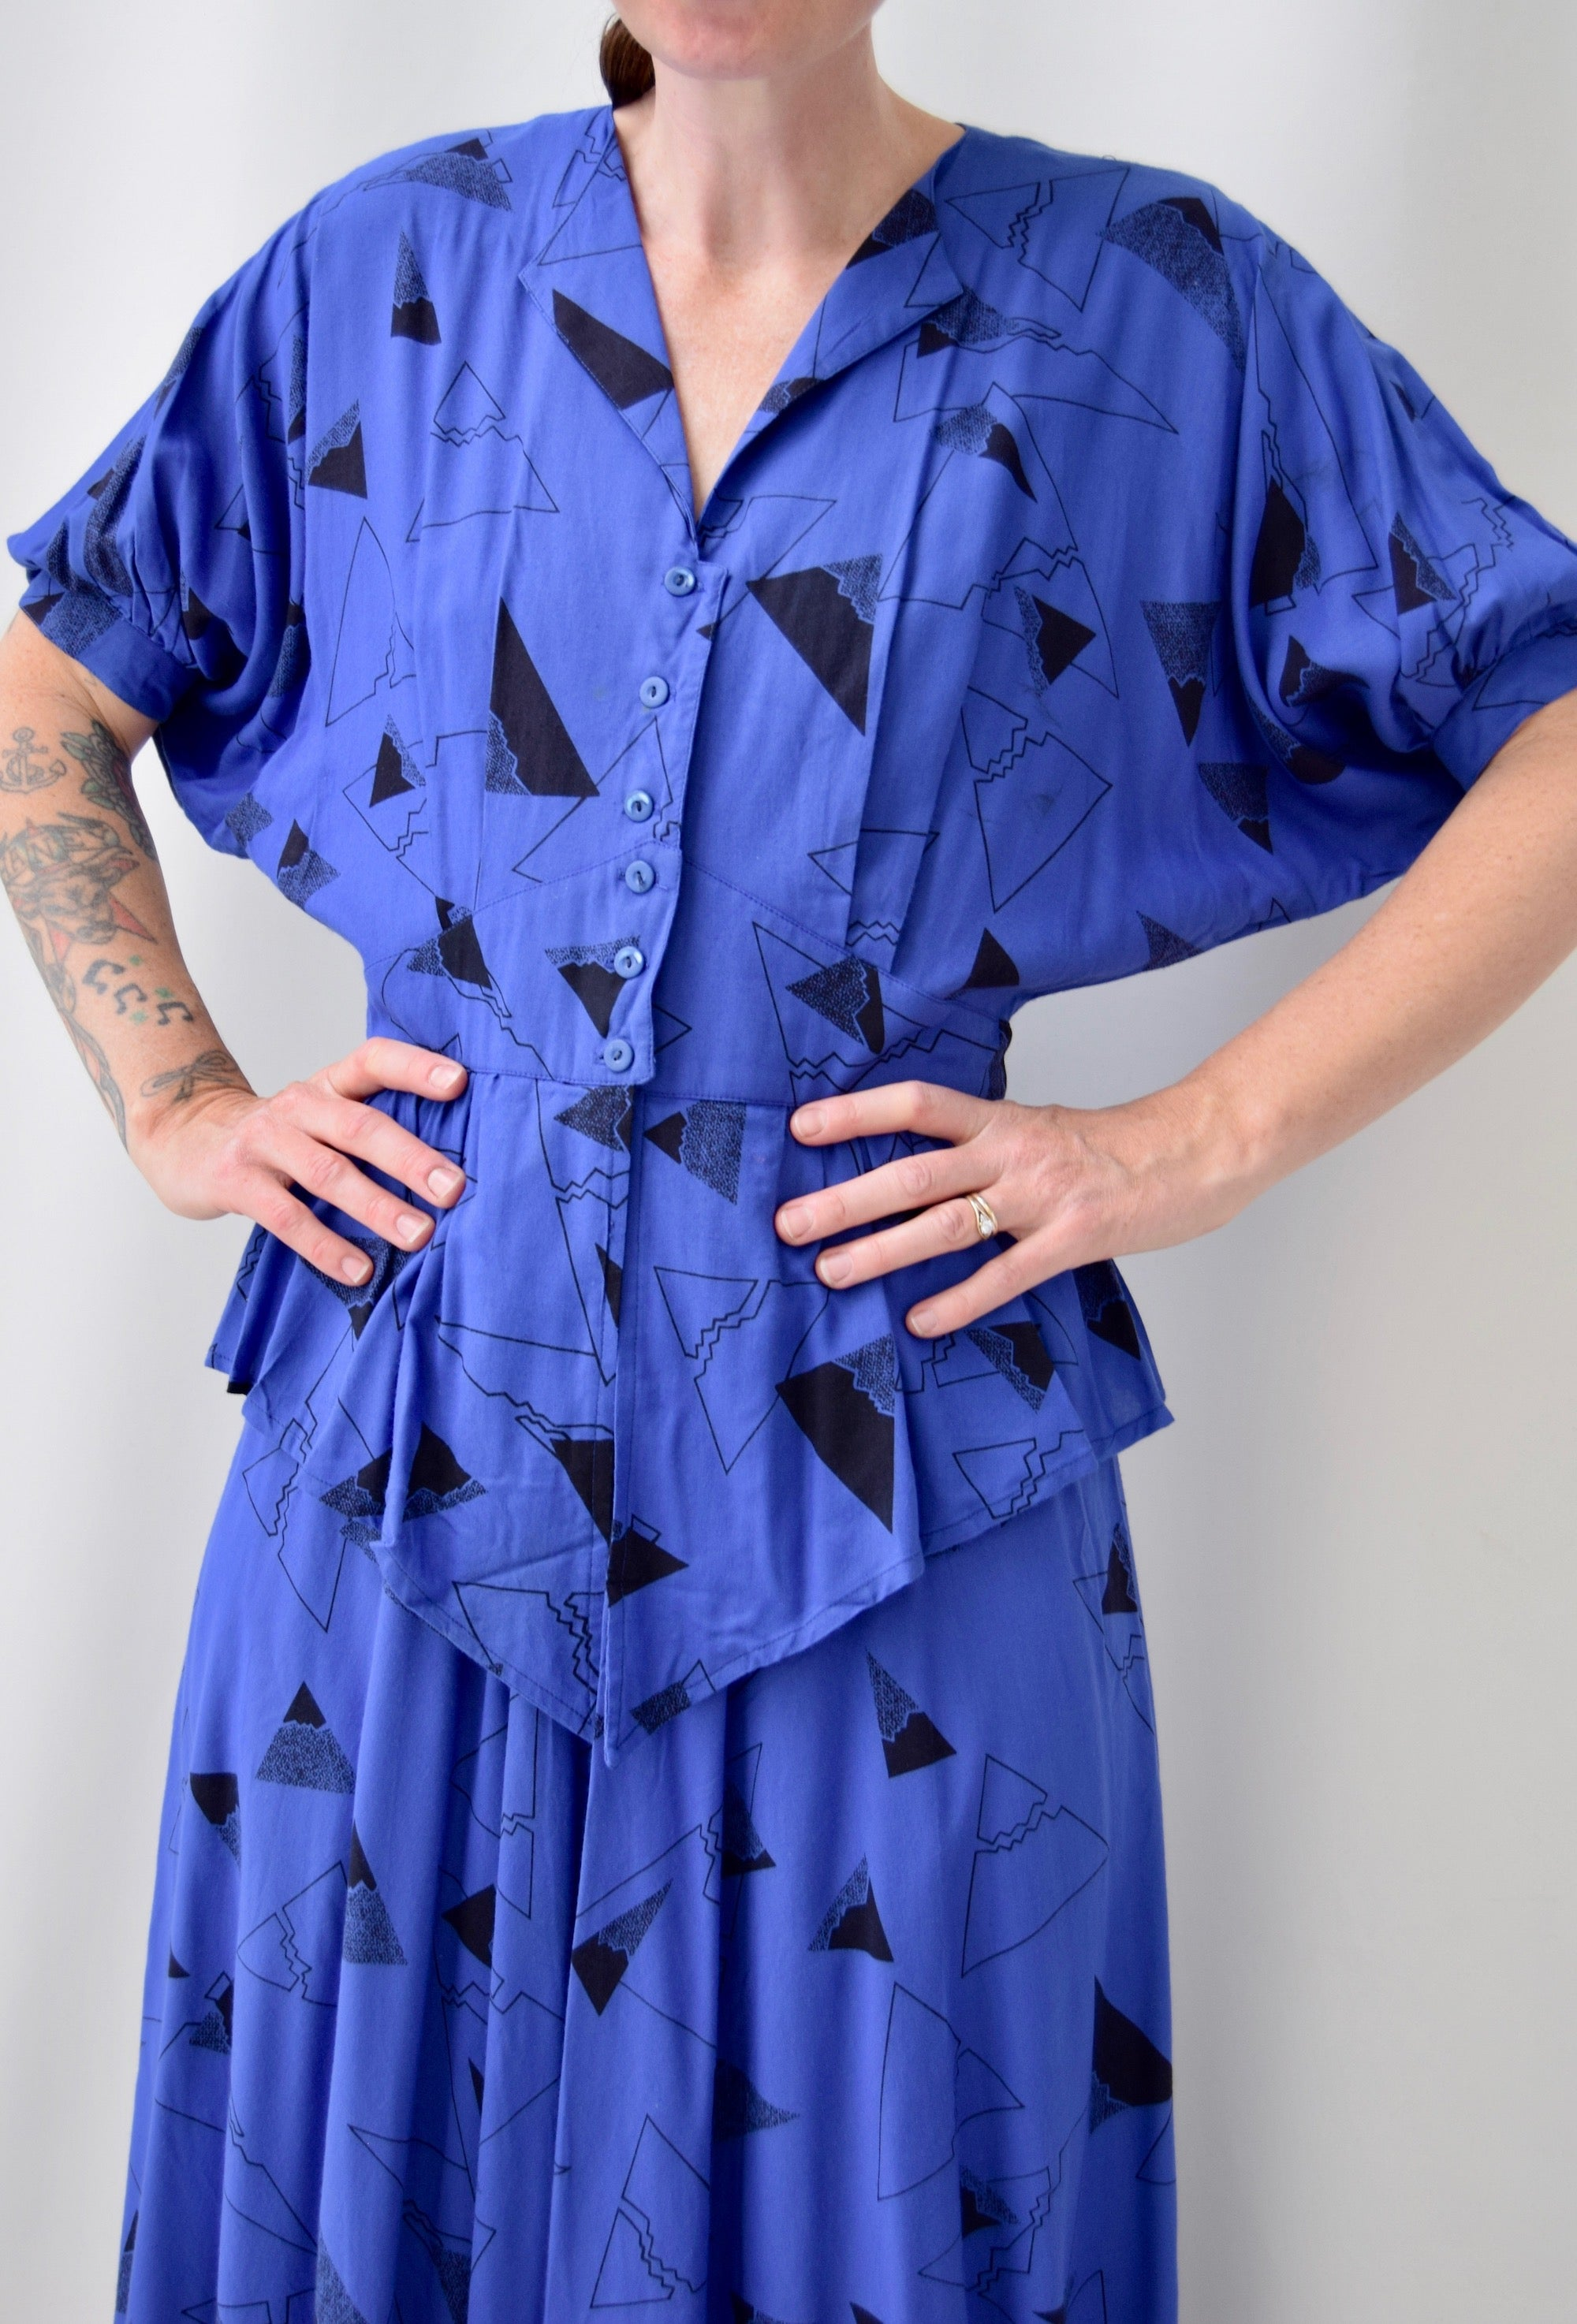 Abstract 80's Periwinkle Dress